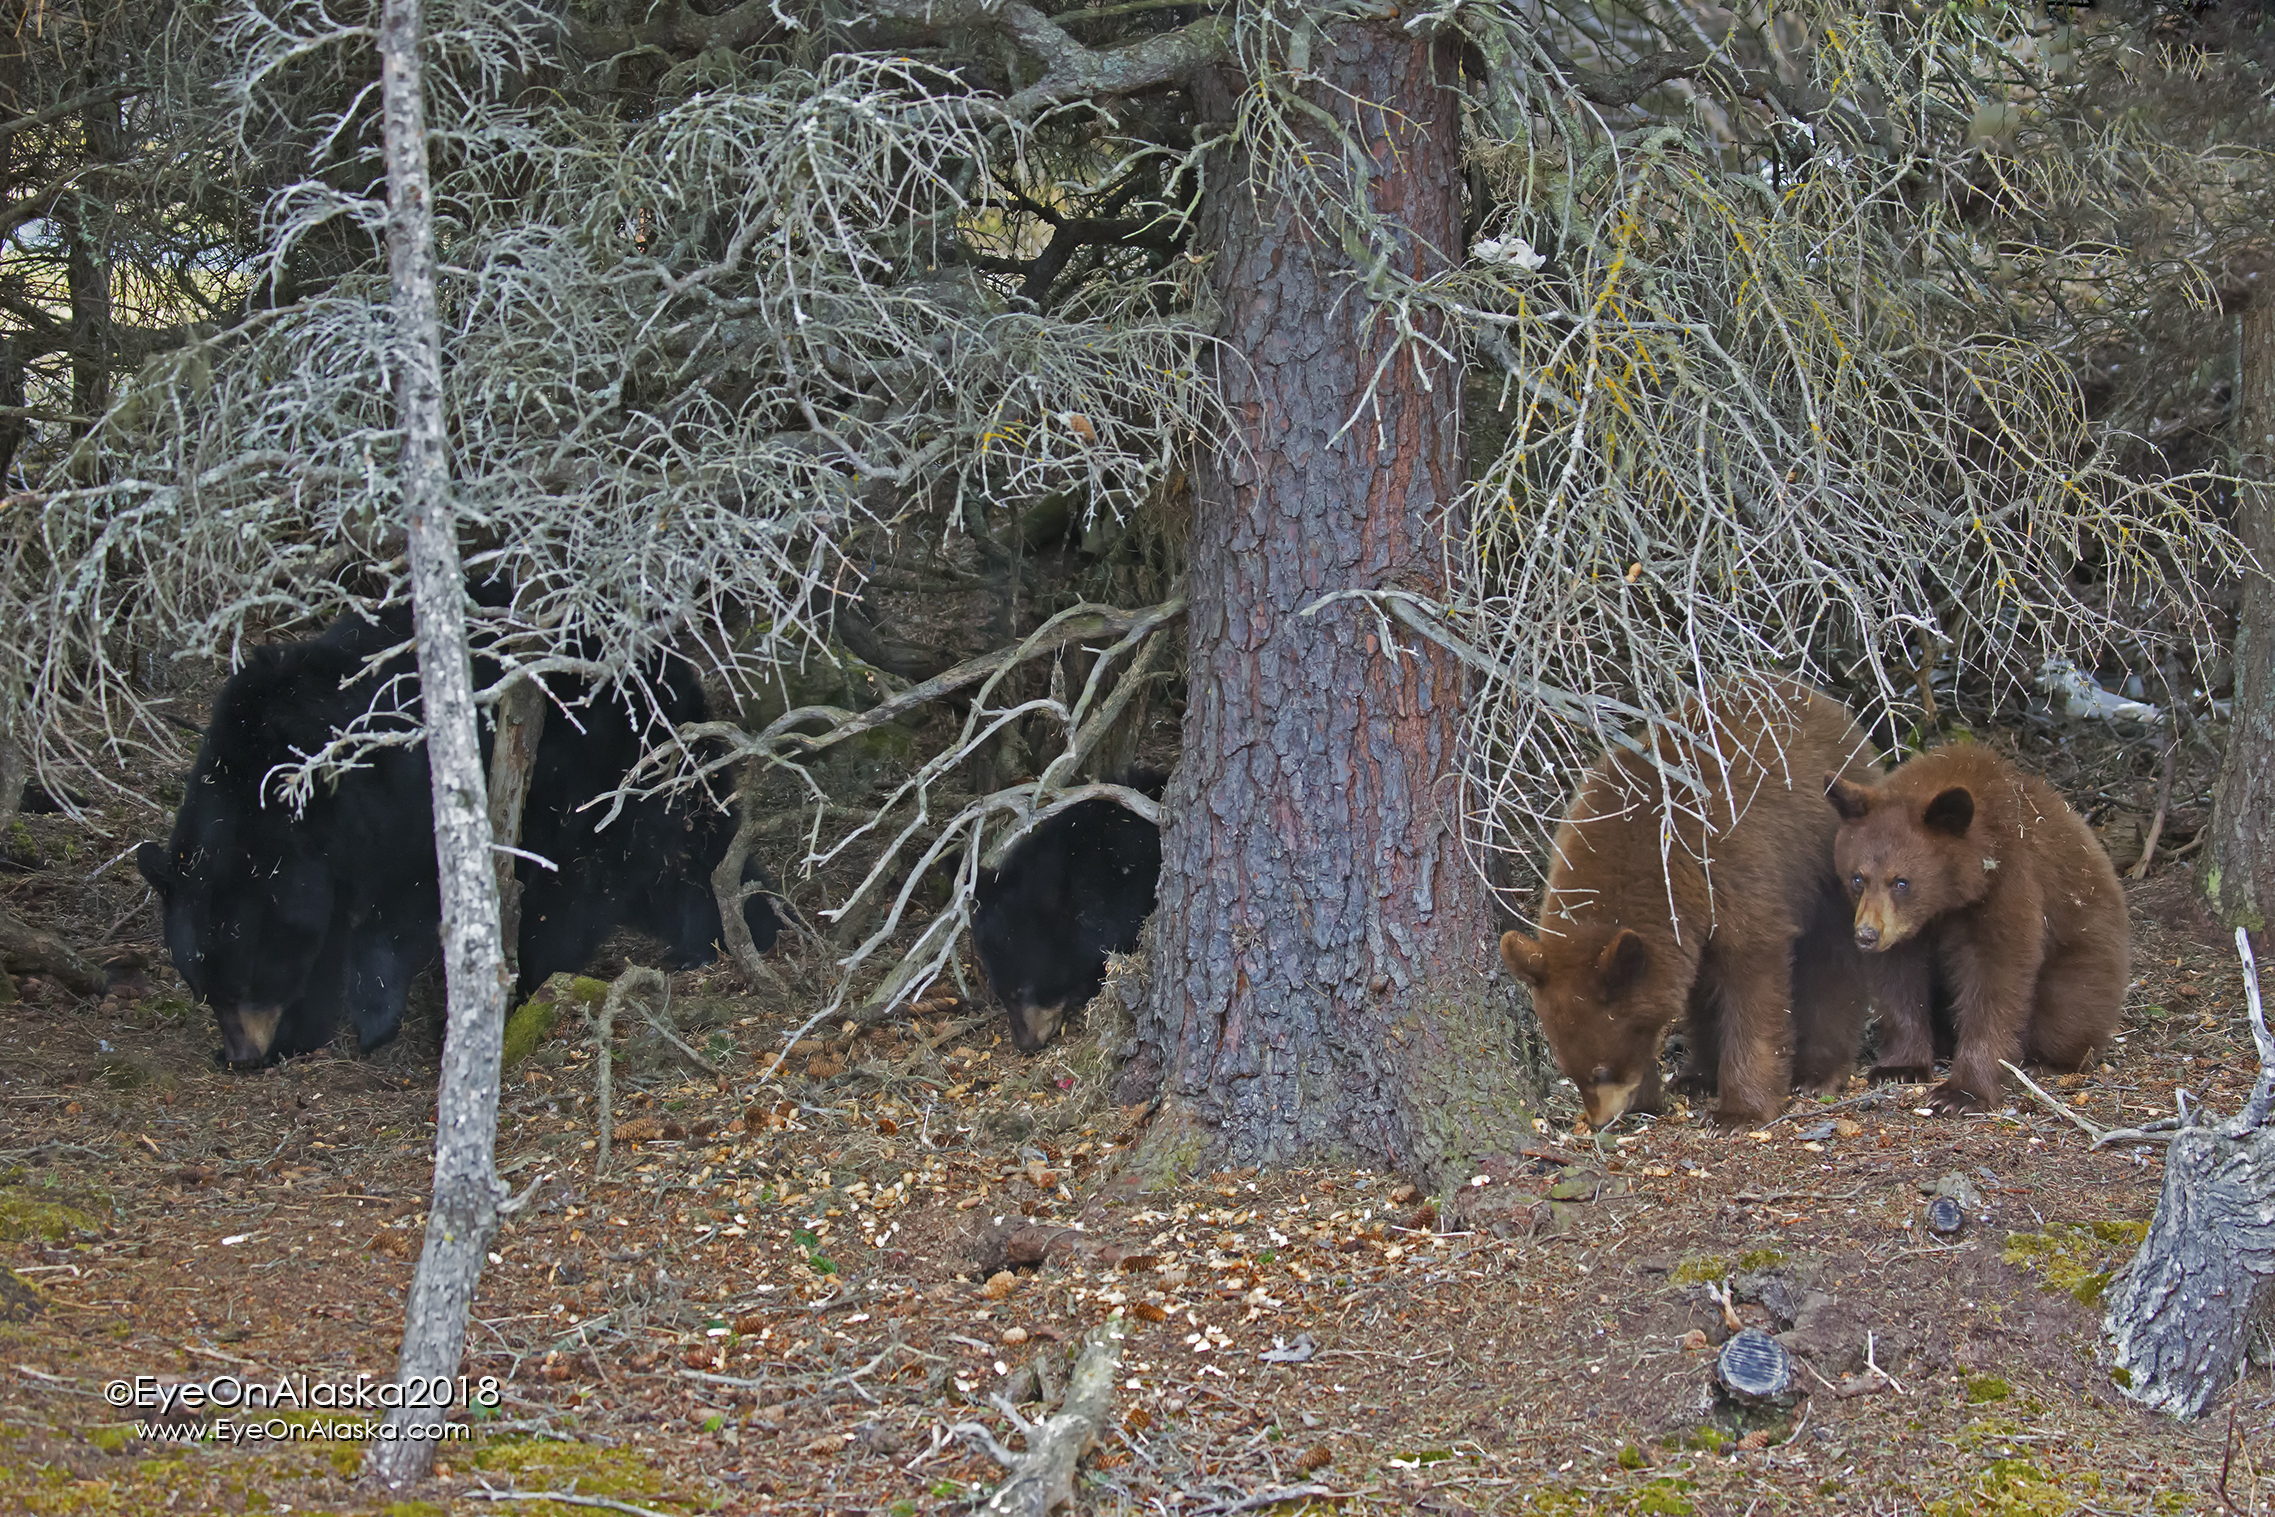 There's the whole family.  Mom, black cub, and two cinnamon cubs.